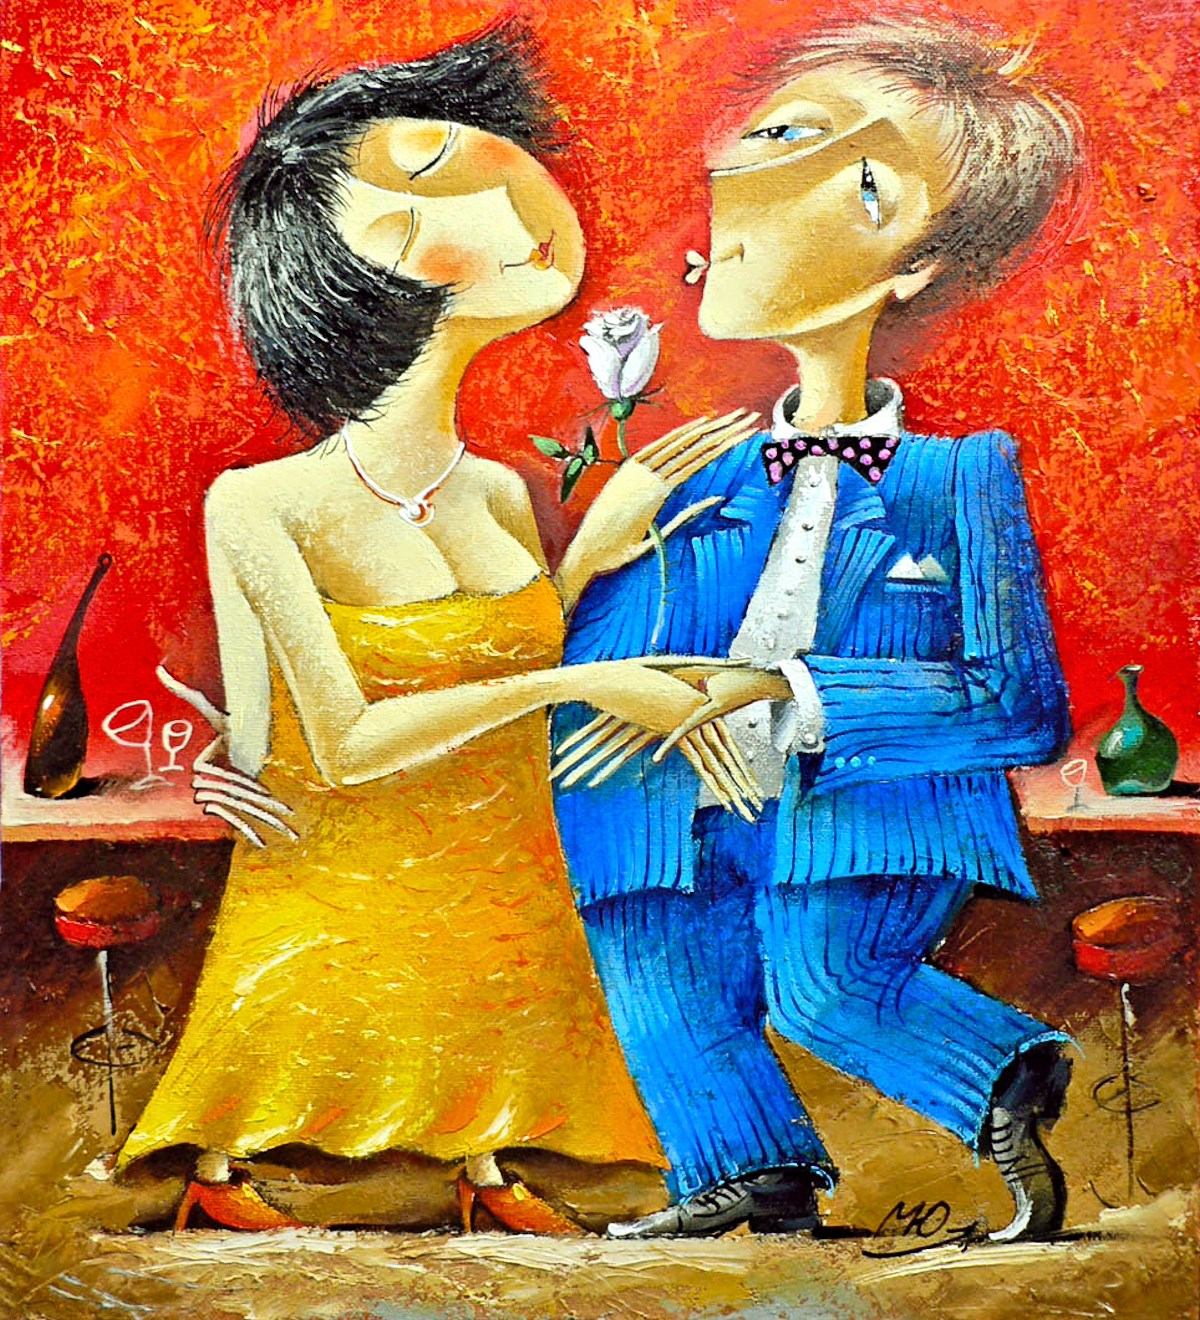 00 Yuri Matsik. A Dancing Couple. 2006